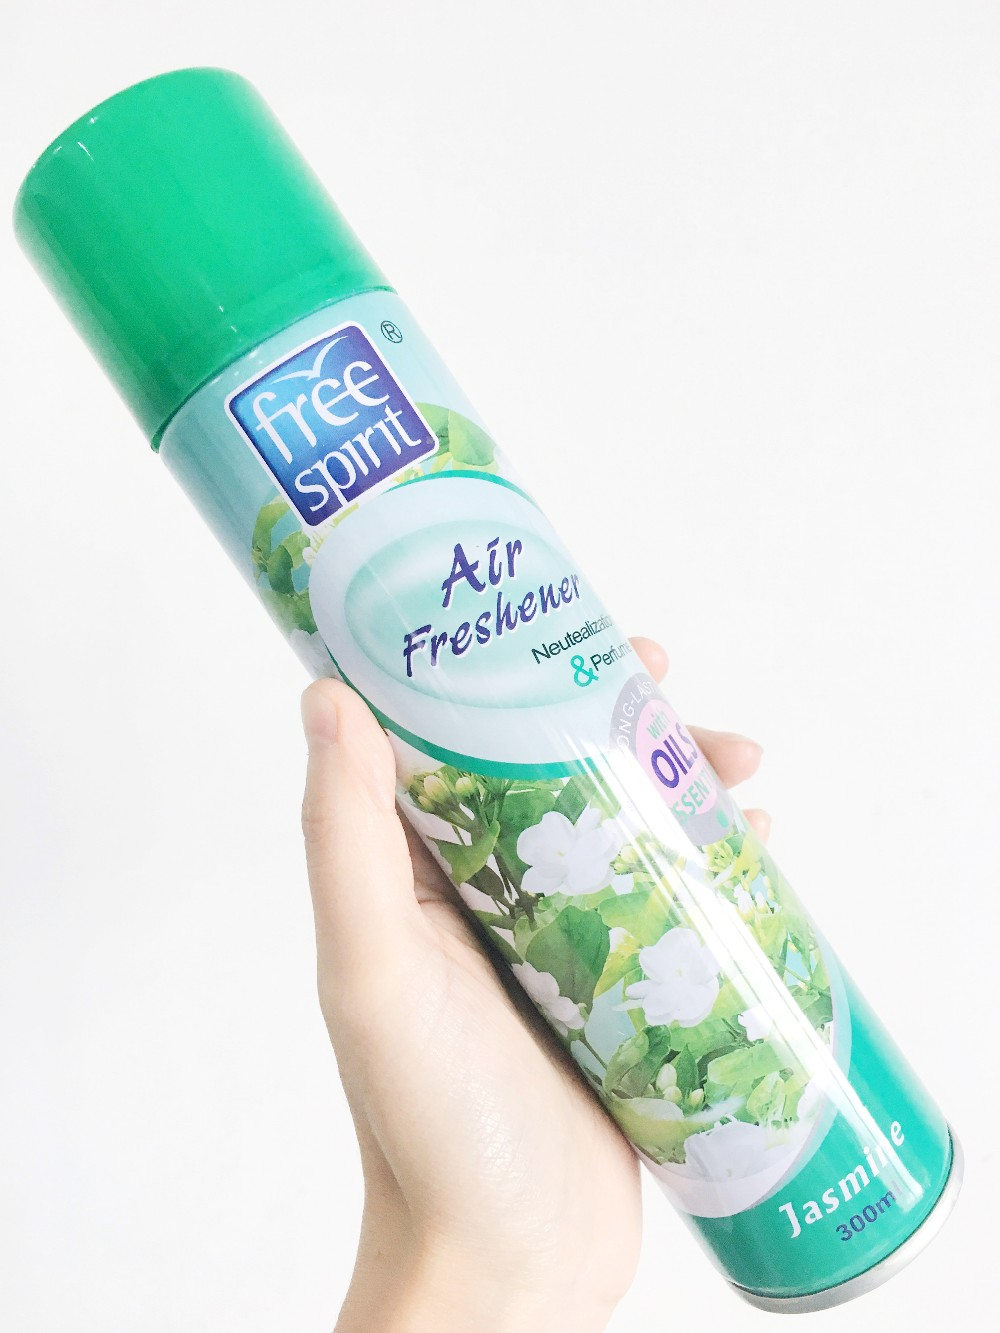 FREE SPIRIT 300ML home air freshener spray